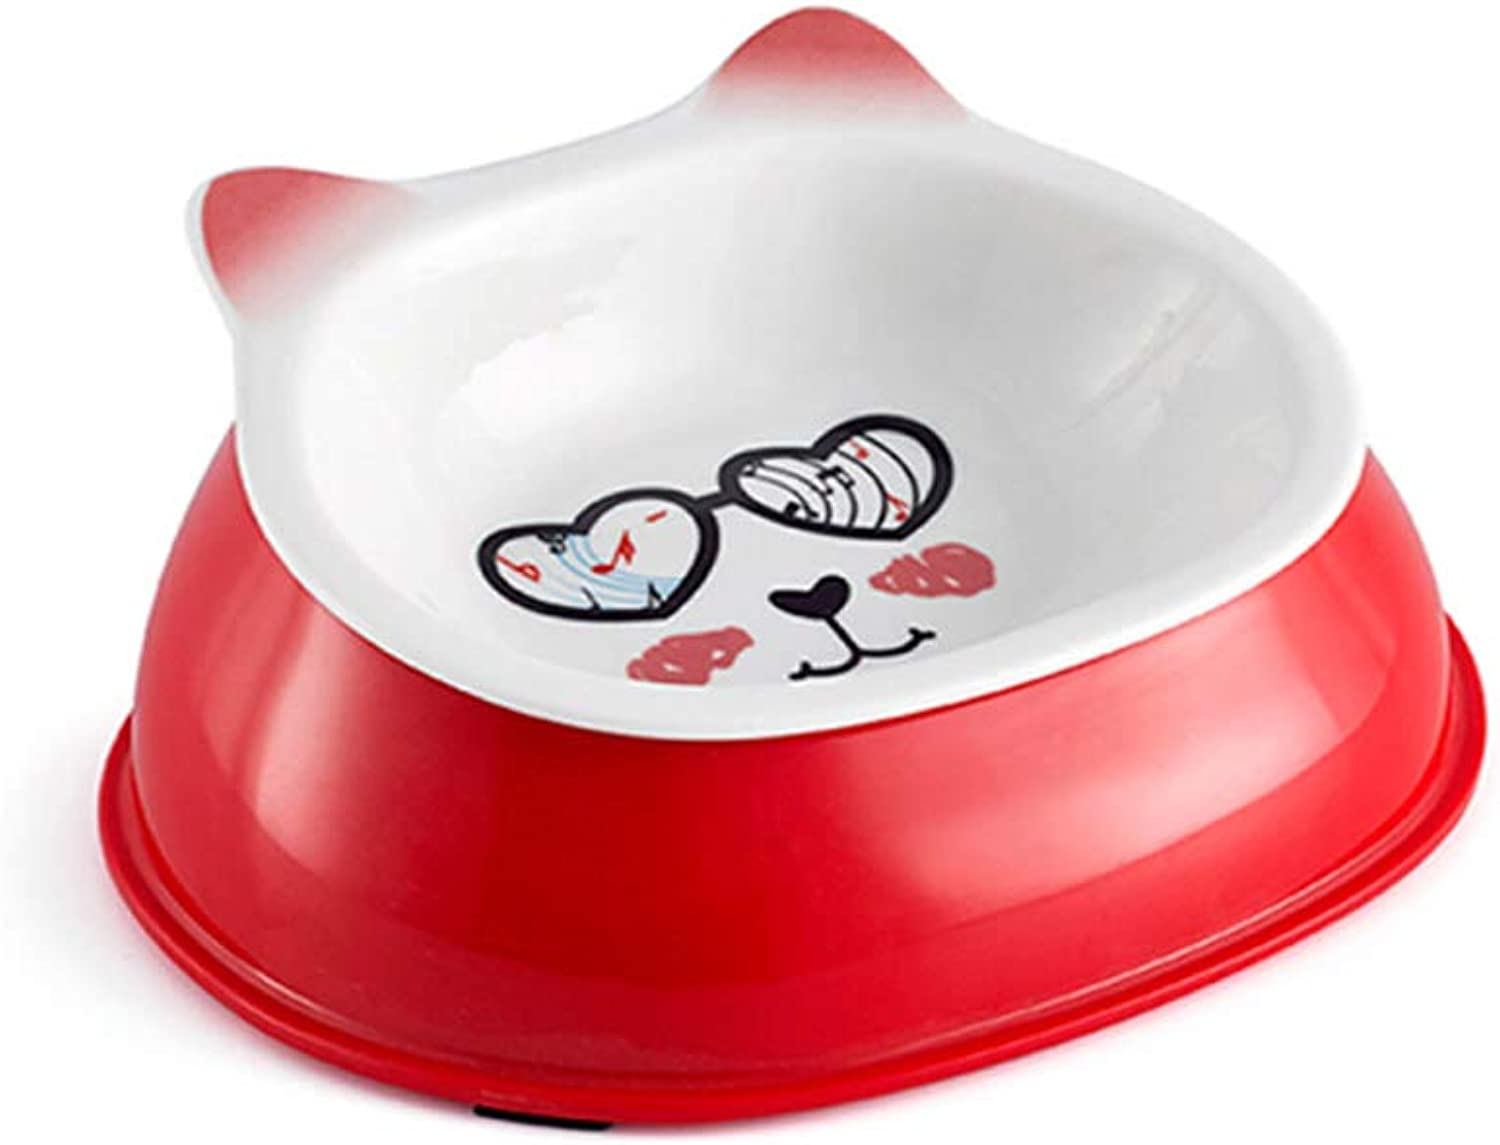 Haoyushangmao Cat Bowl, Cat Food Bowl, Dog Food Bowl, Pet Supplies, Ceramic Bowl, Cat Feeder, Dog Food Bowl, Best Gift Latest Models (color   Red, Size   Small)